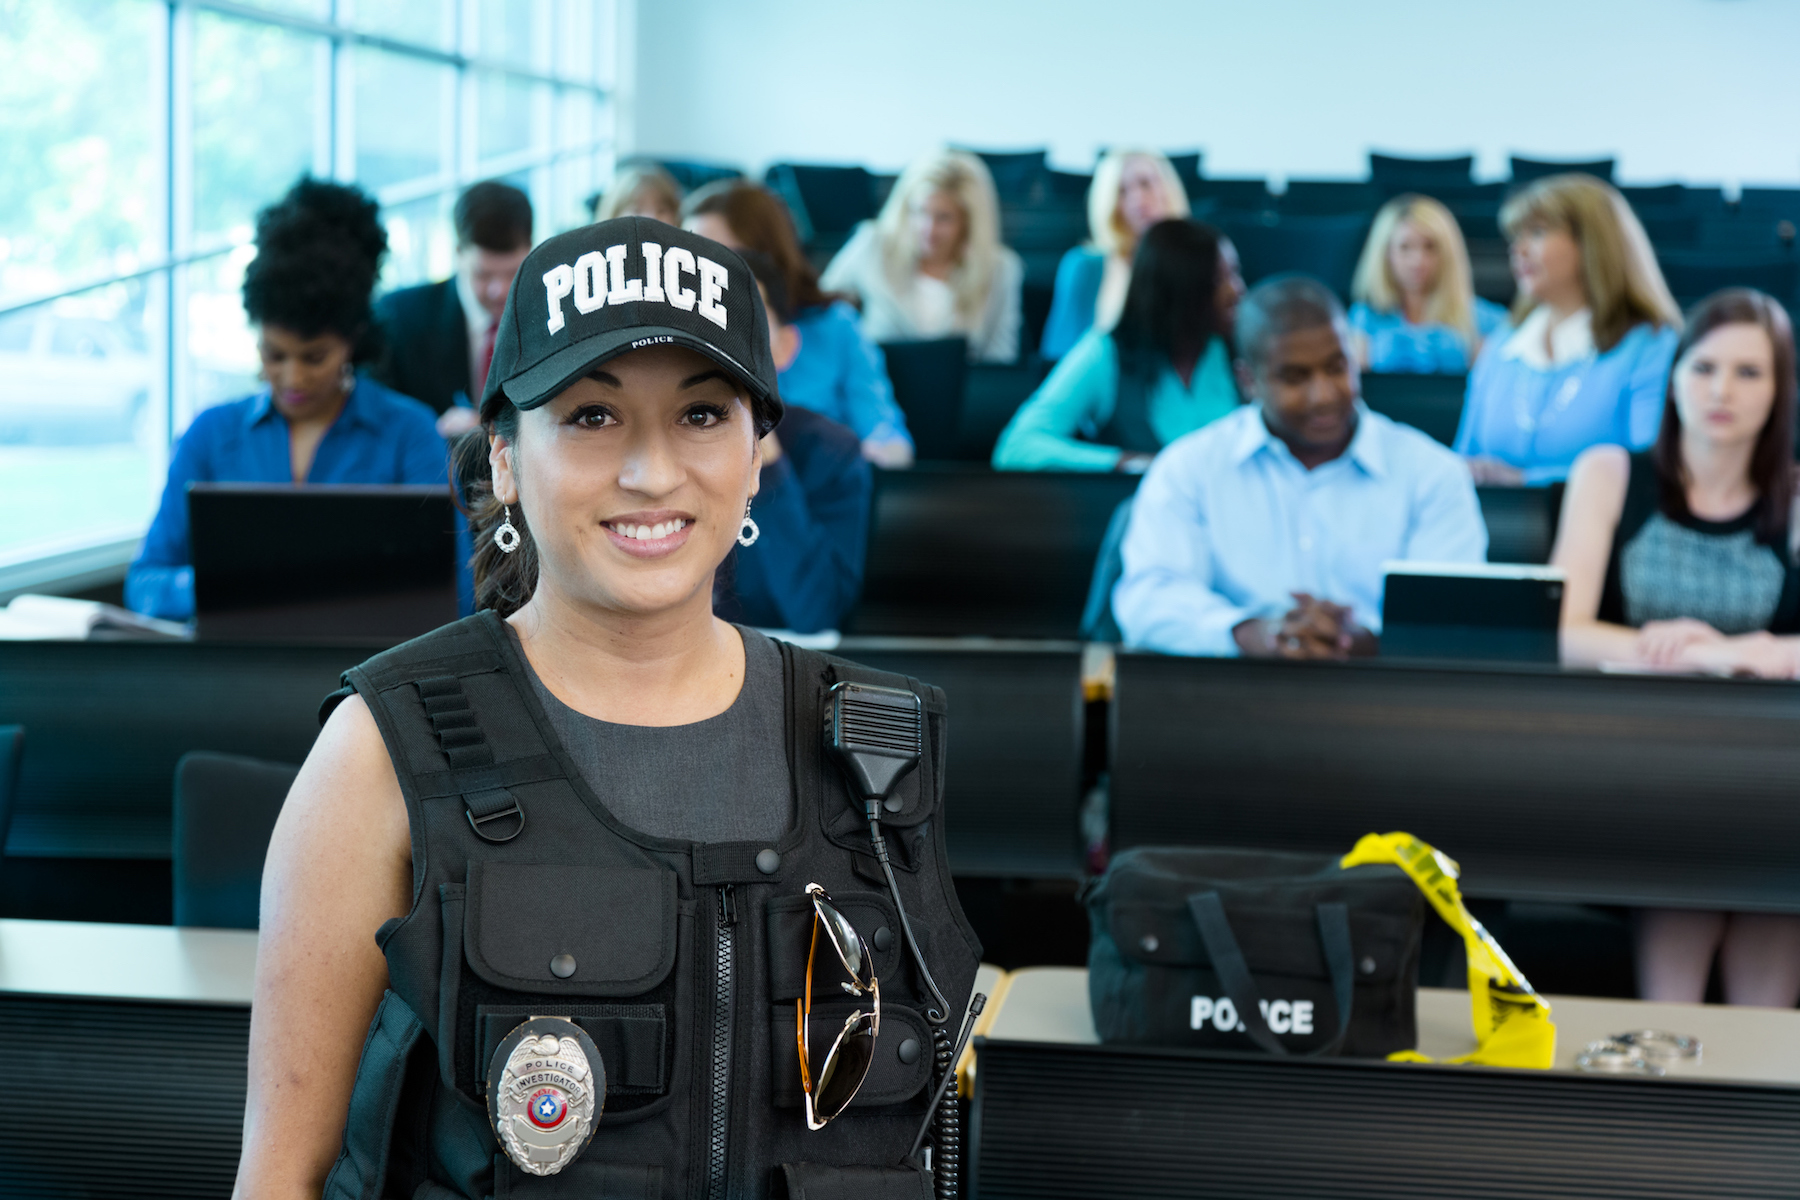 Female police officer in front of classroom